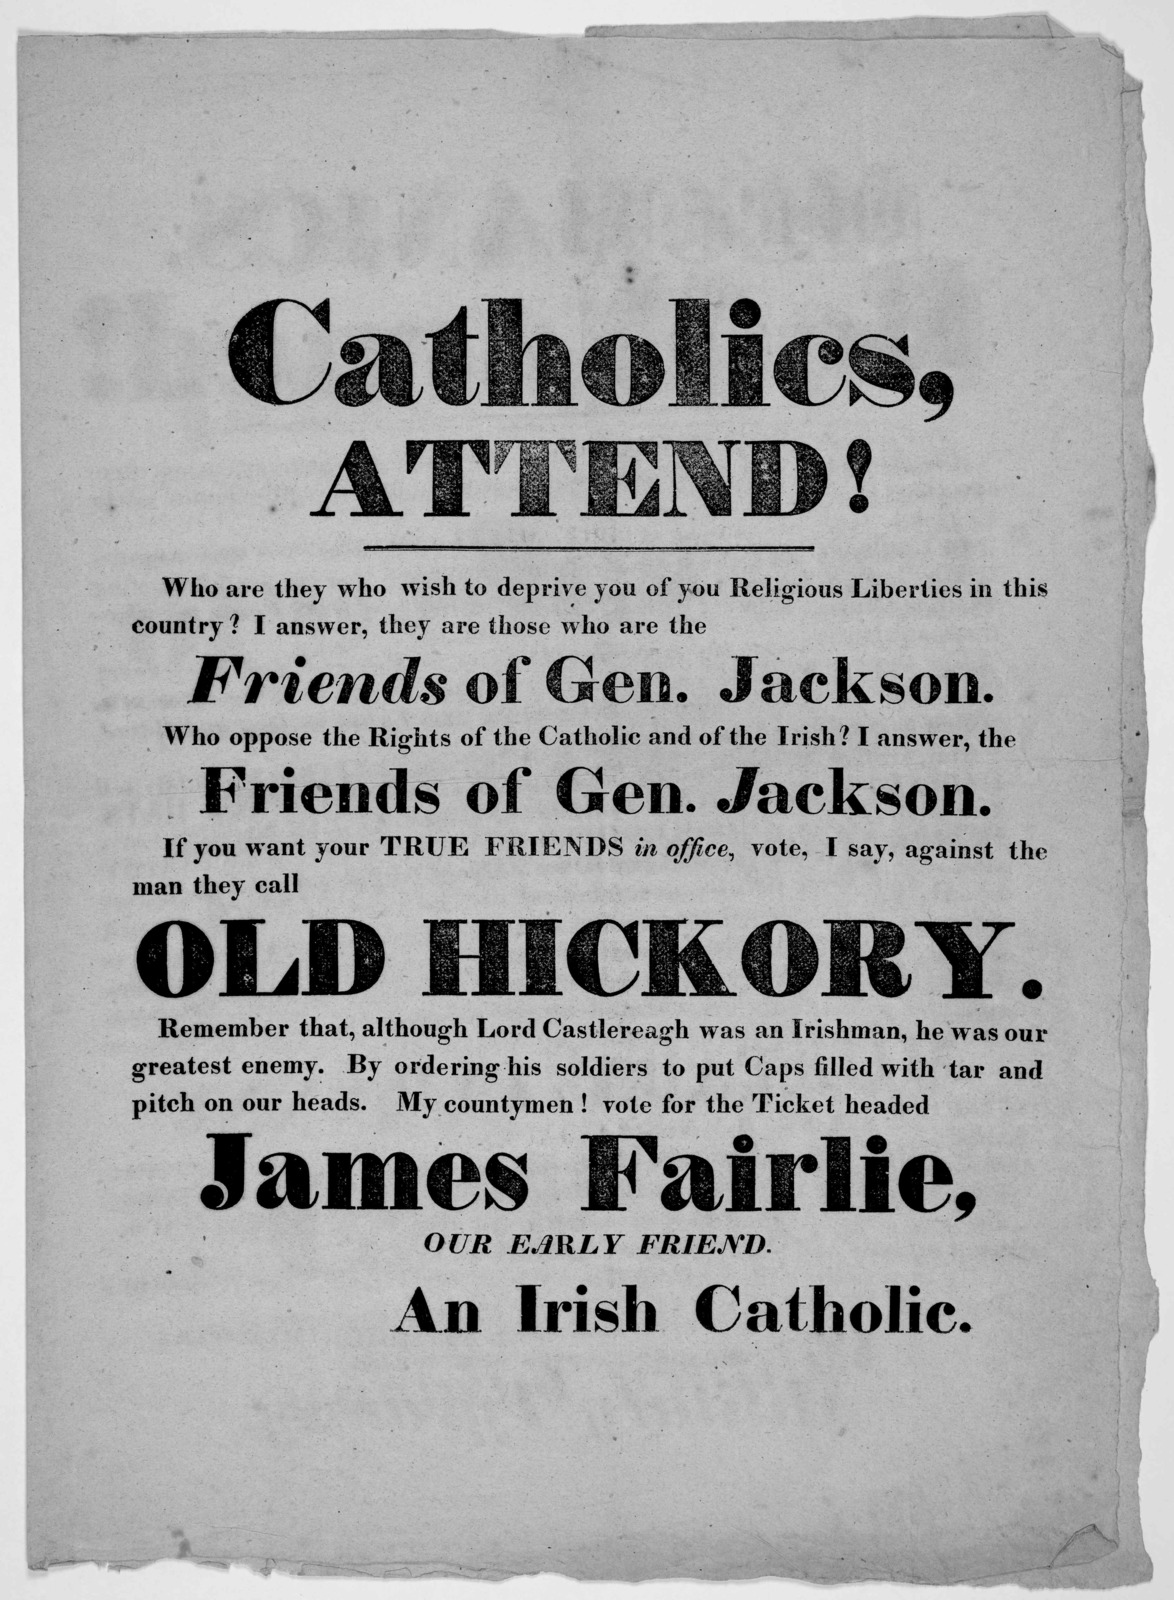 Catholics, attend! Who are they who wish to deprive you of your religious liberties in this country? I answer, they are those who are the friends of Gen. Jackson … Vote for the ticket headed James Fairlie, our early friend [Signed] An Irish Cath